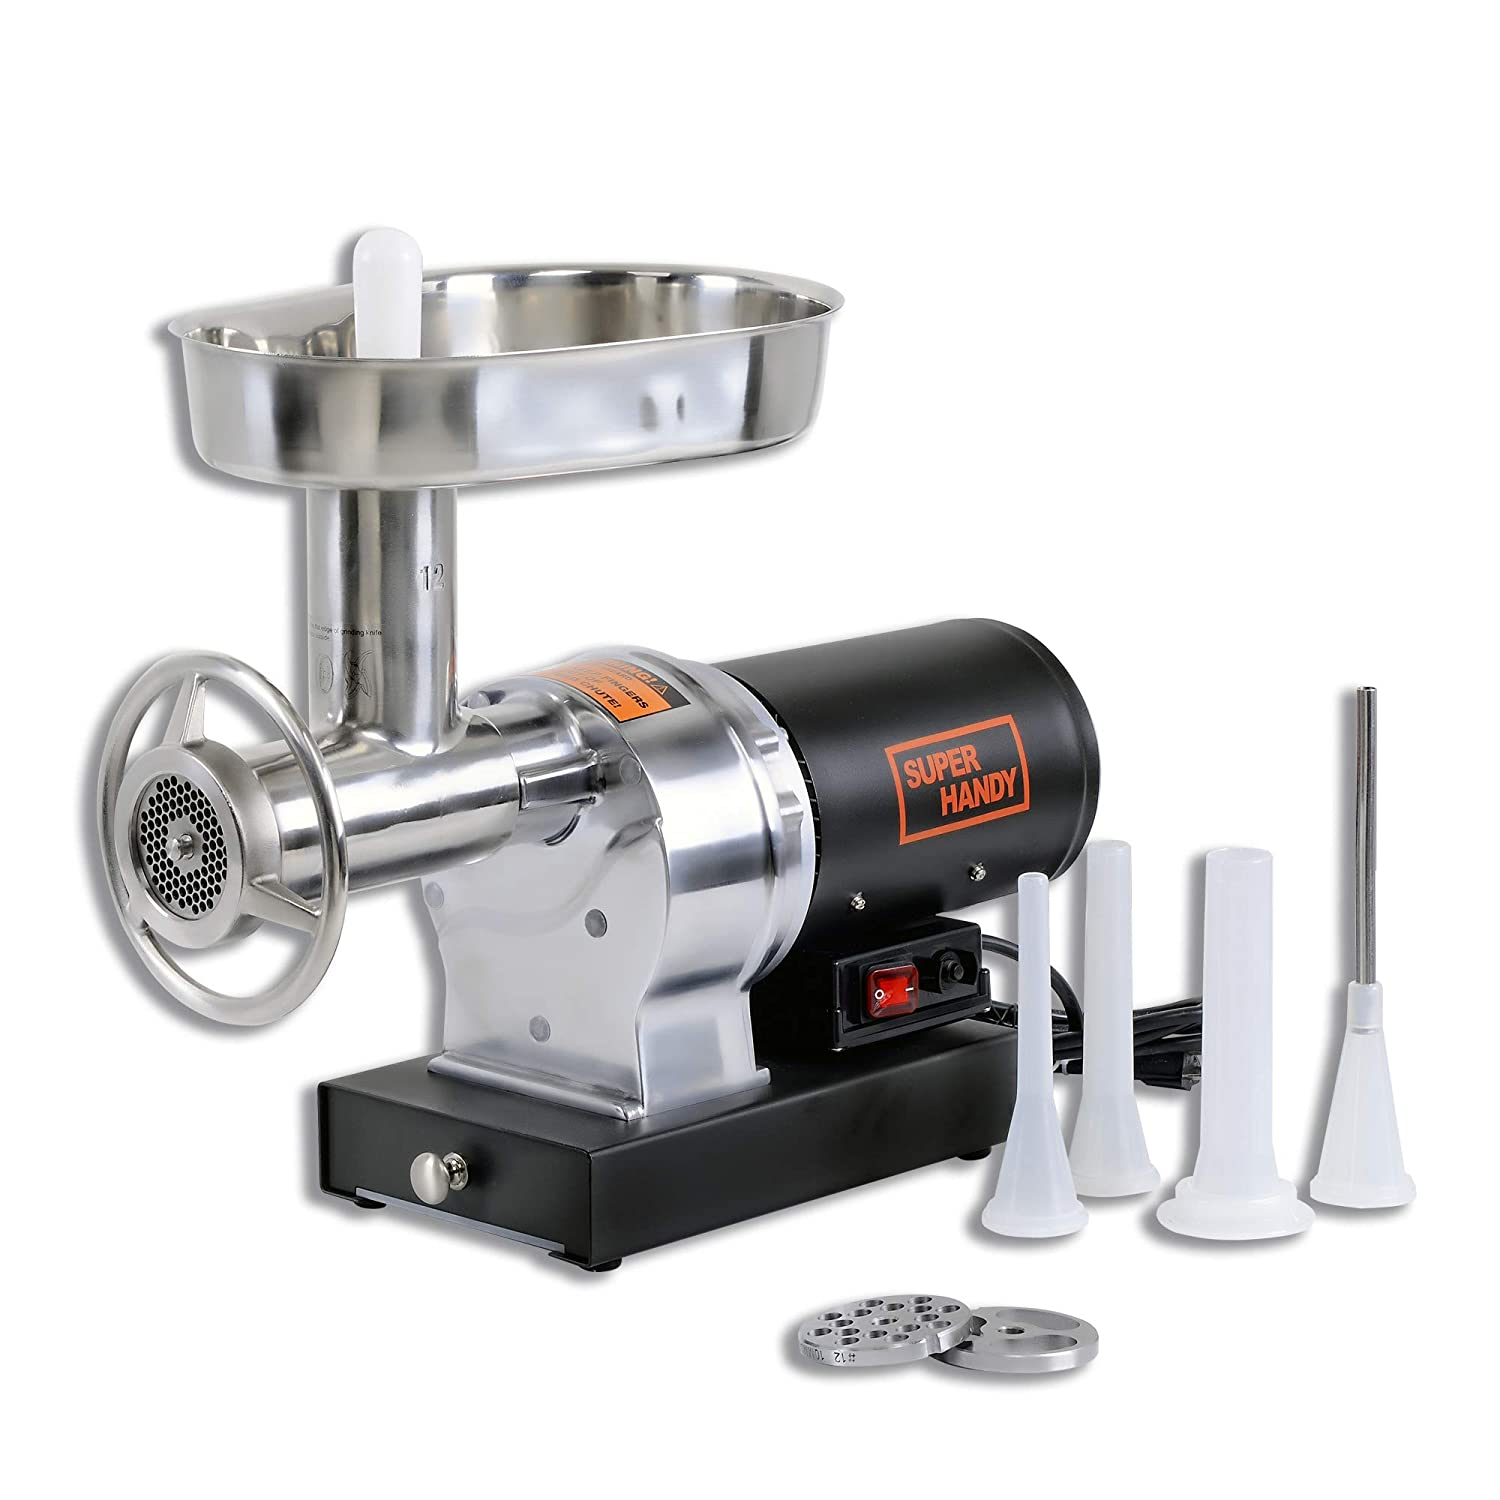 SuperHandy Stainless Steel #12 3/4 HP Electric Meat Grinder Mincer Sausage Stuffer 720lbs Per Hour Heavy Duty Commercial Kitchen SS Blade, Pan, Grinding Plates & Stuffing Tubes, Stomper, Storage Box